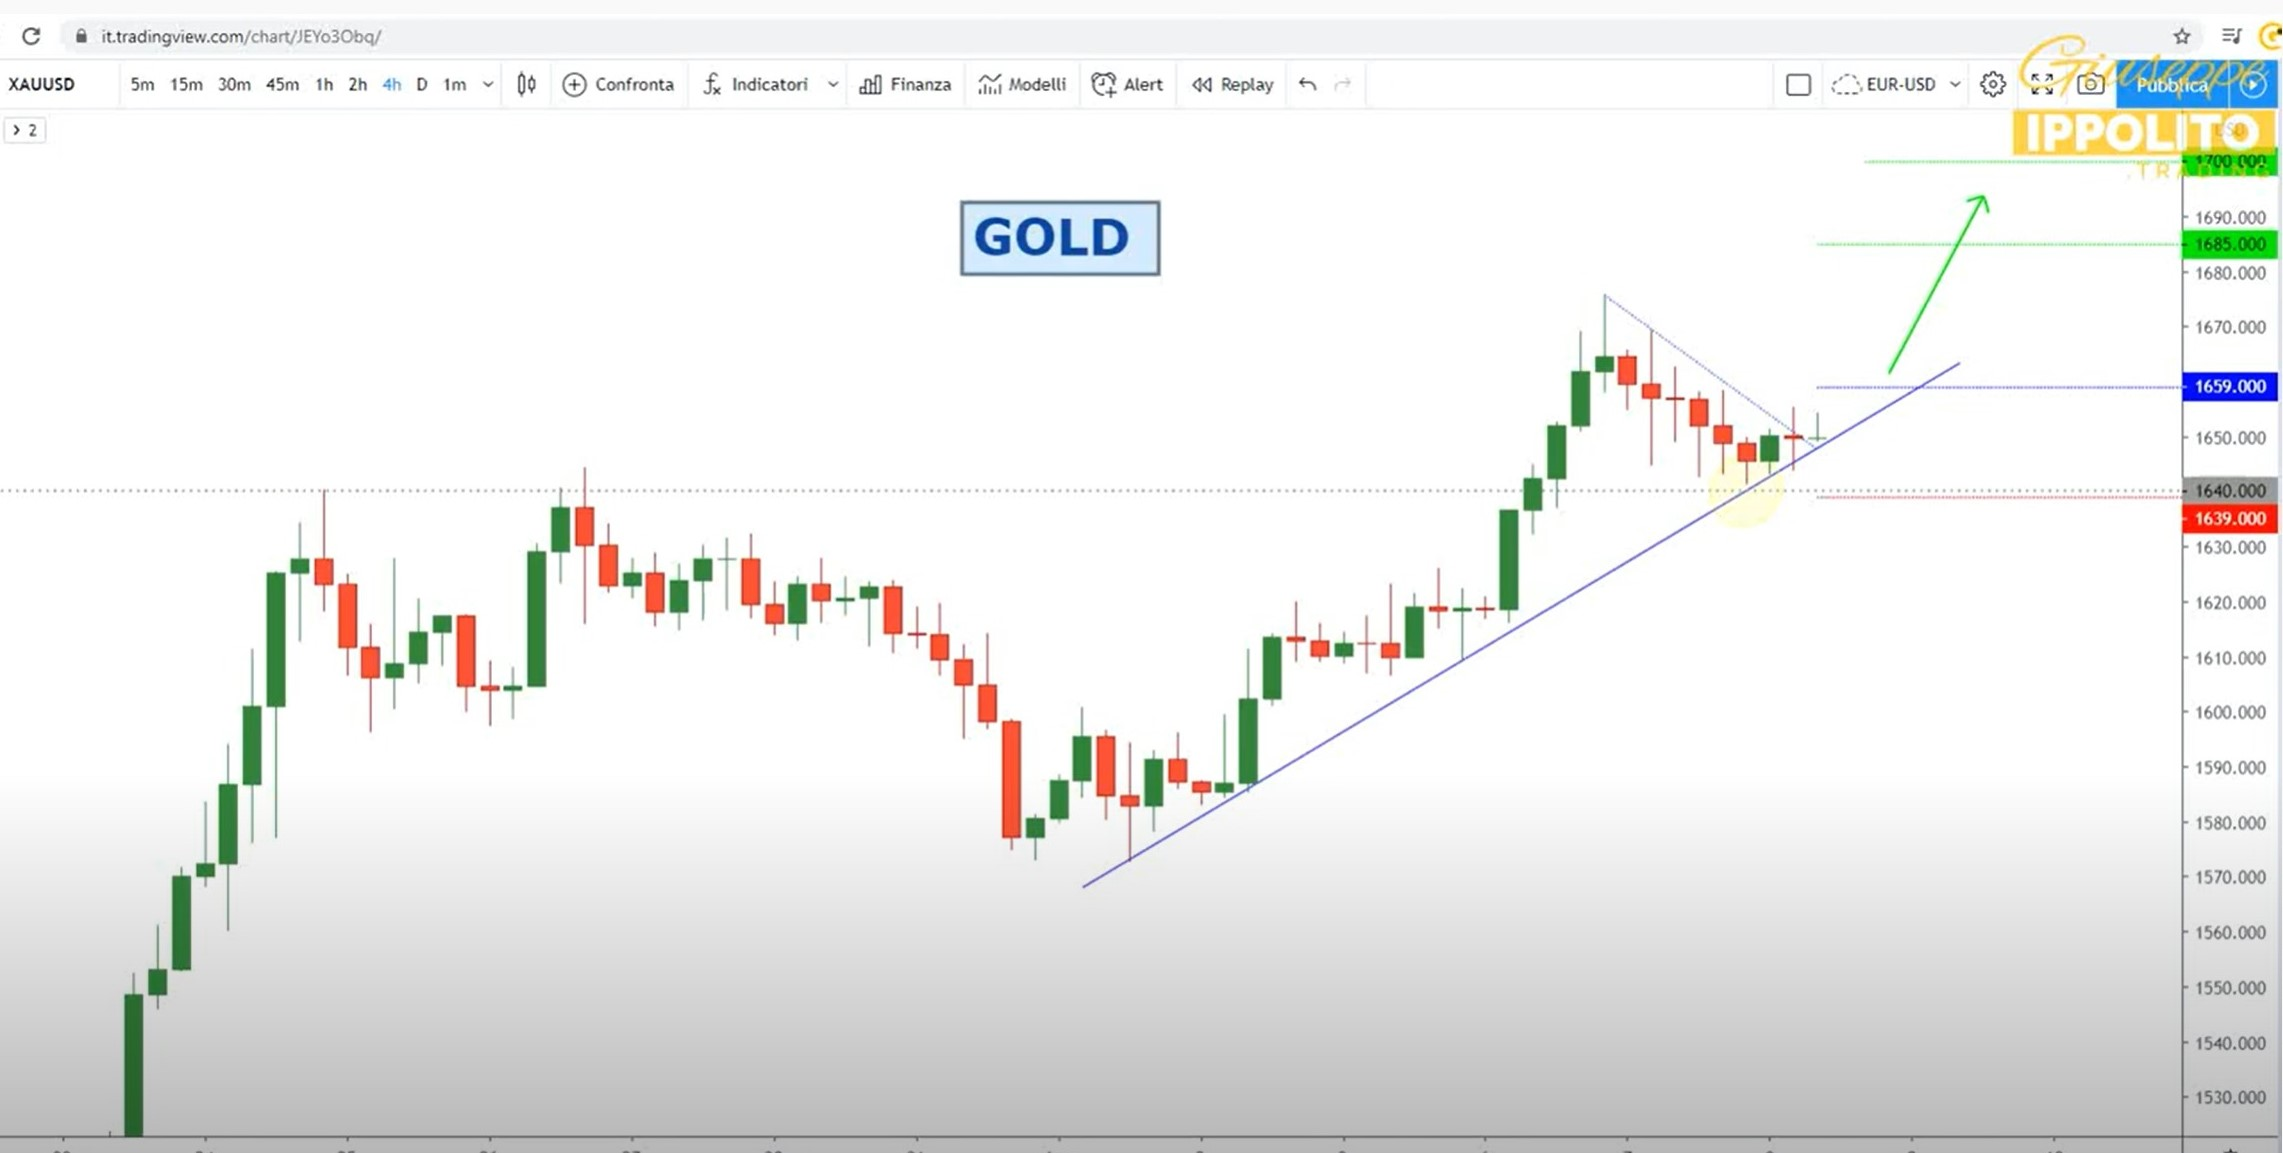 Analisi opportunità GOLD del 08-04-2020